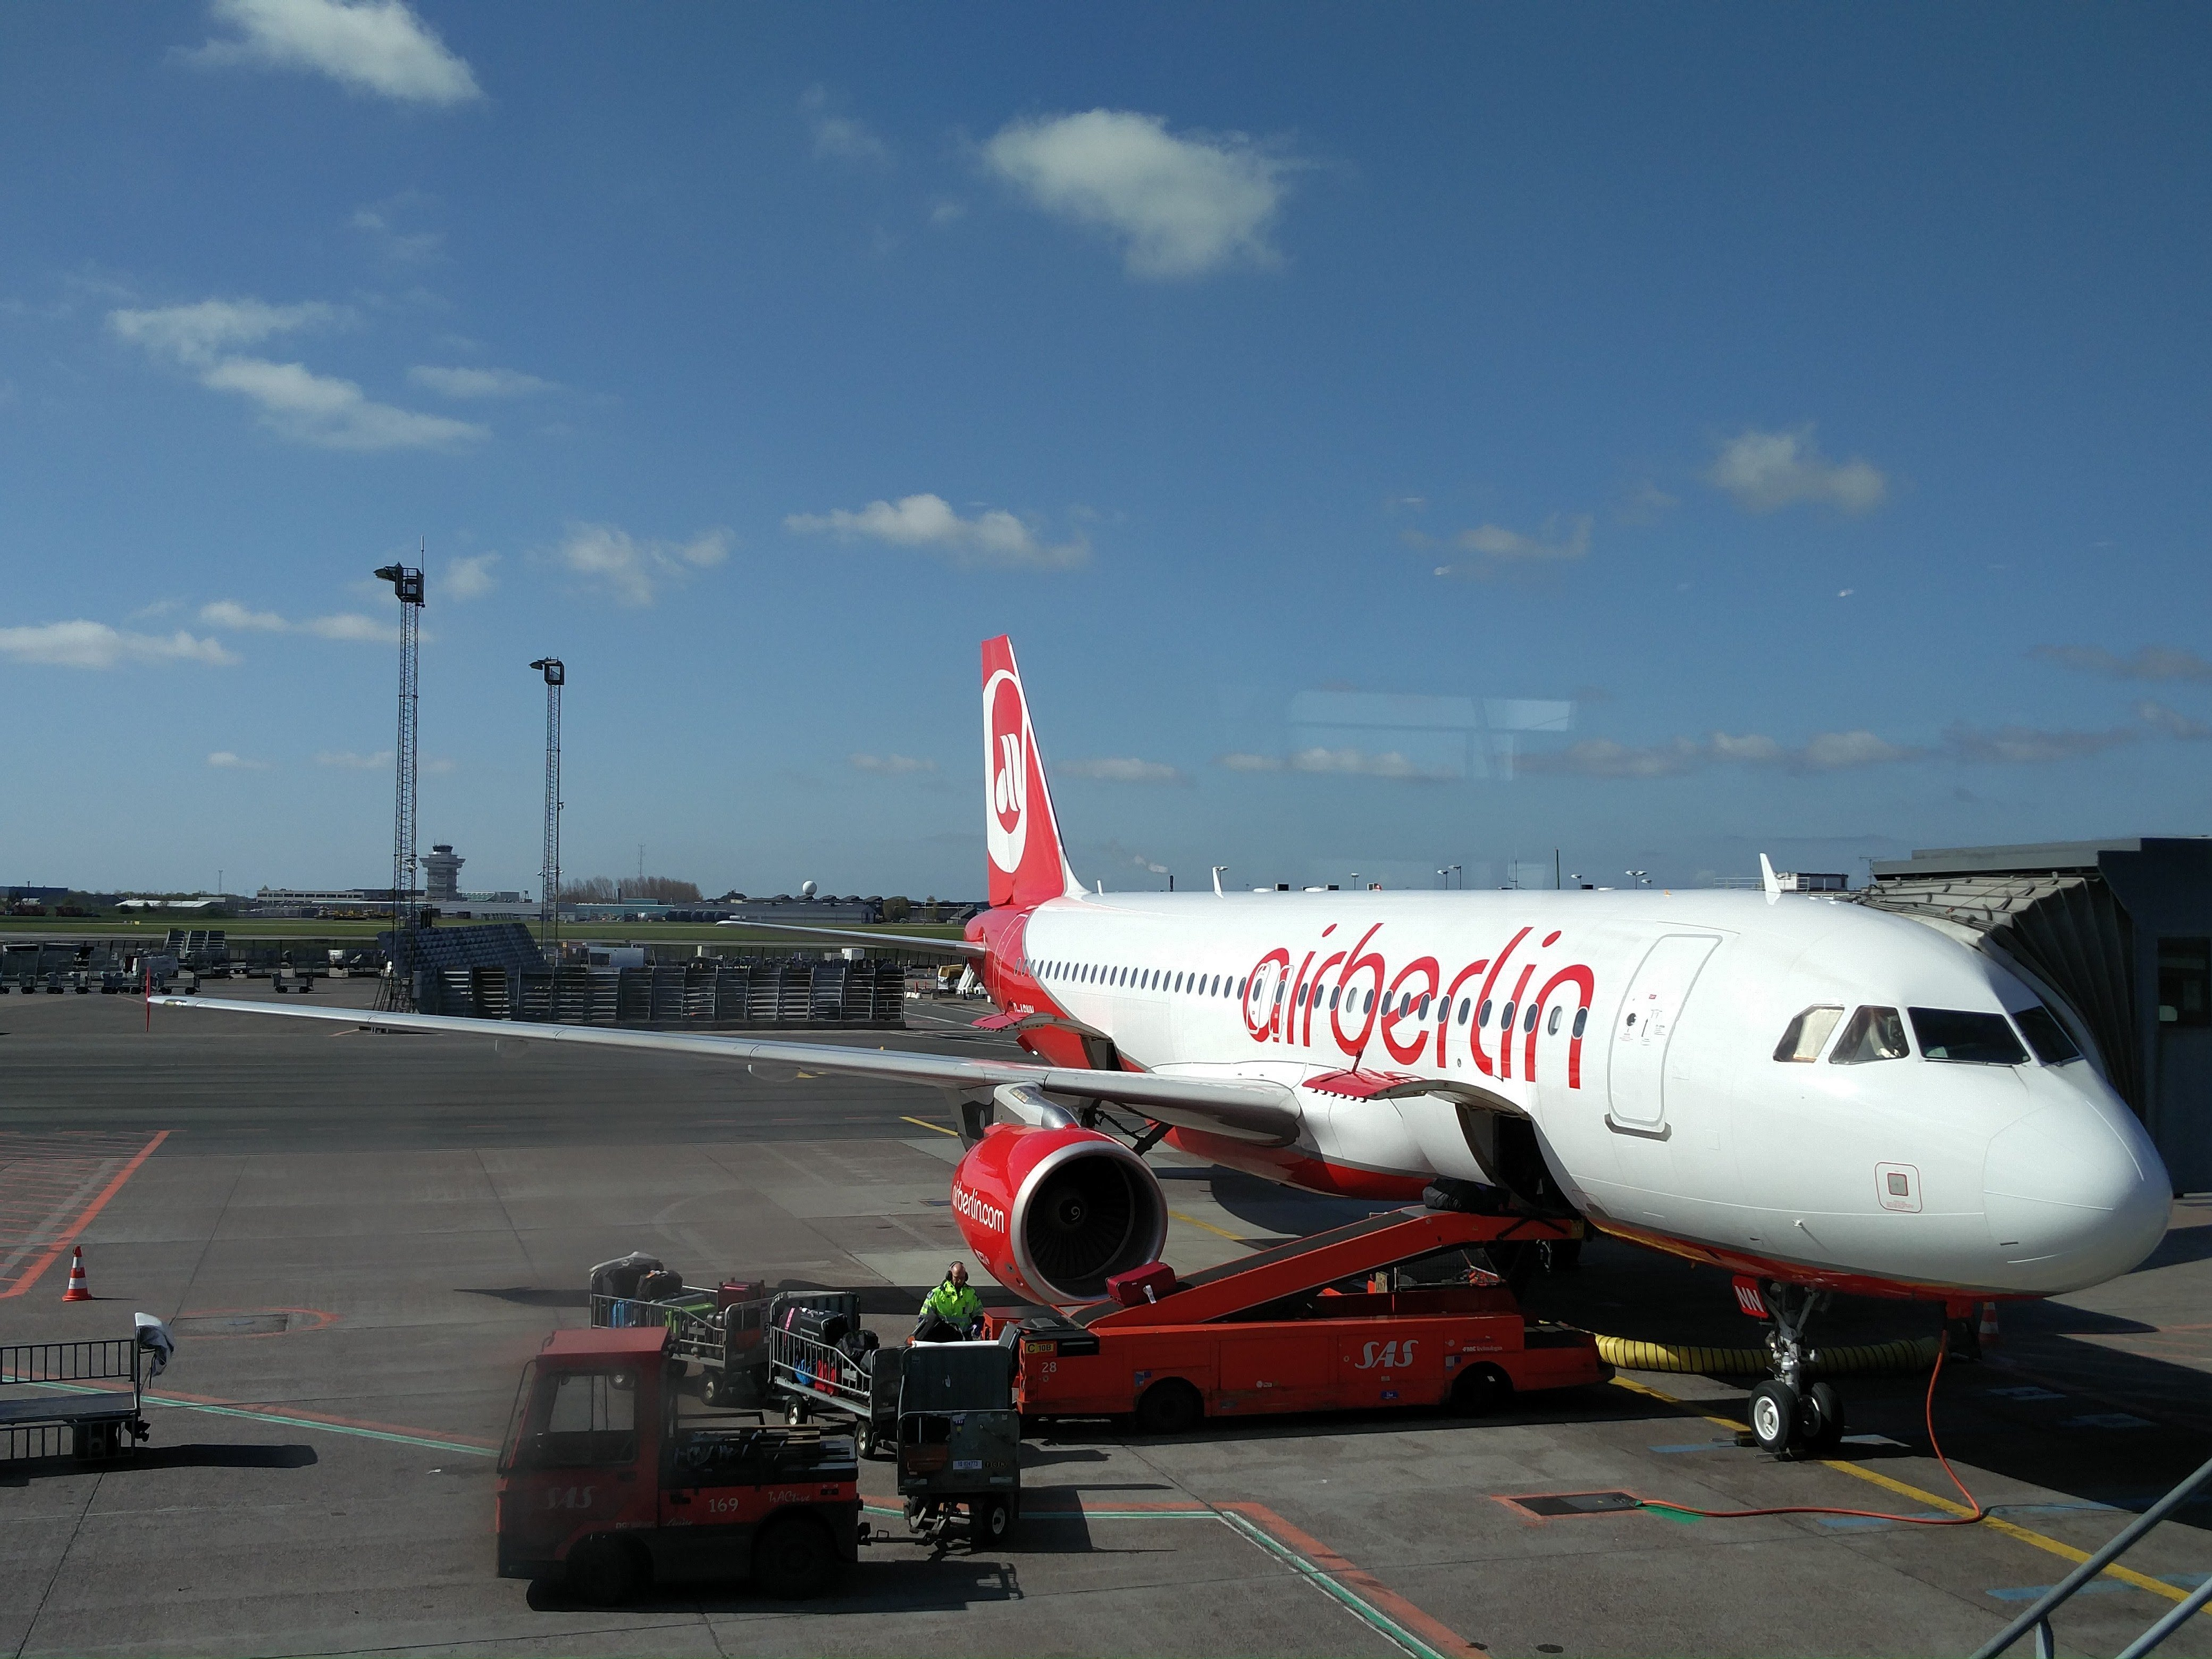 airBerlin plane ready to take off